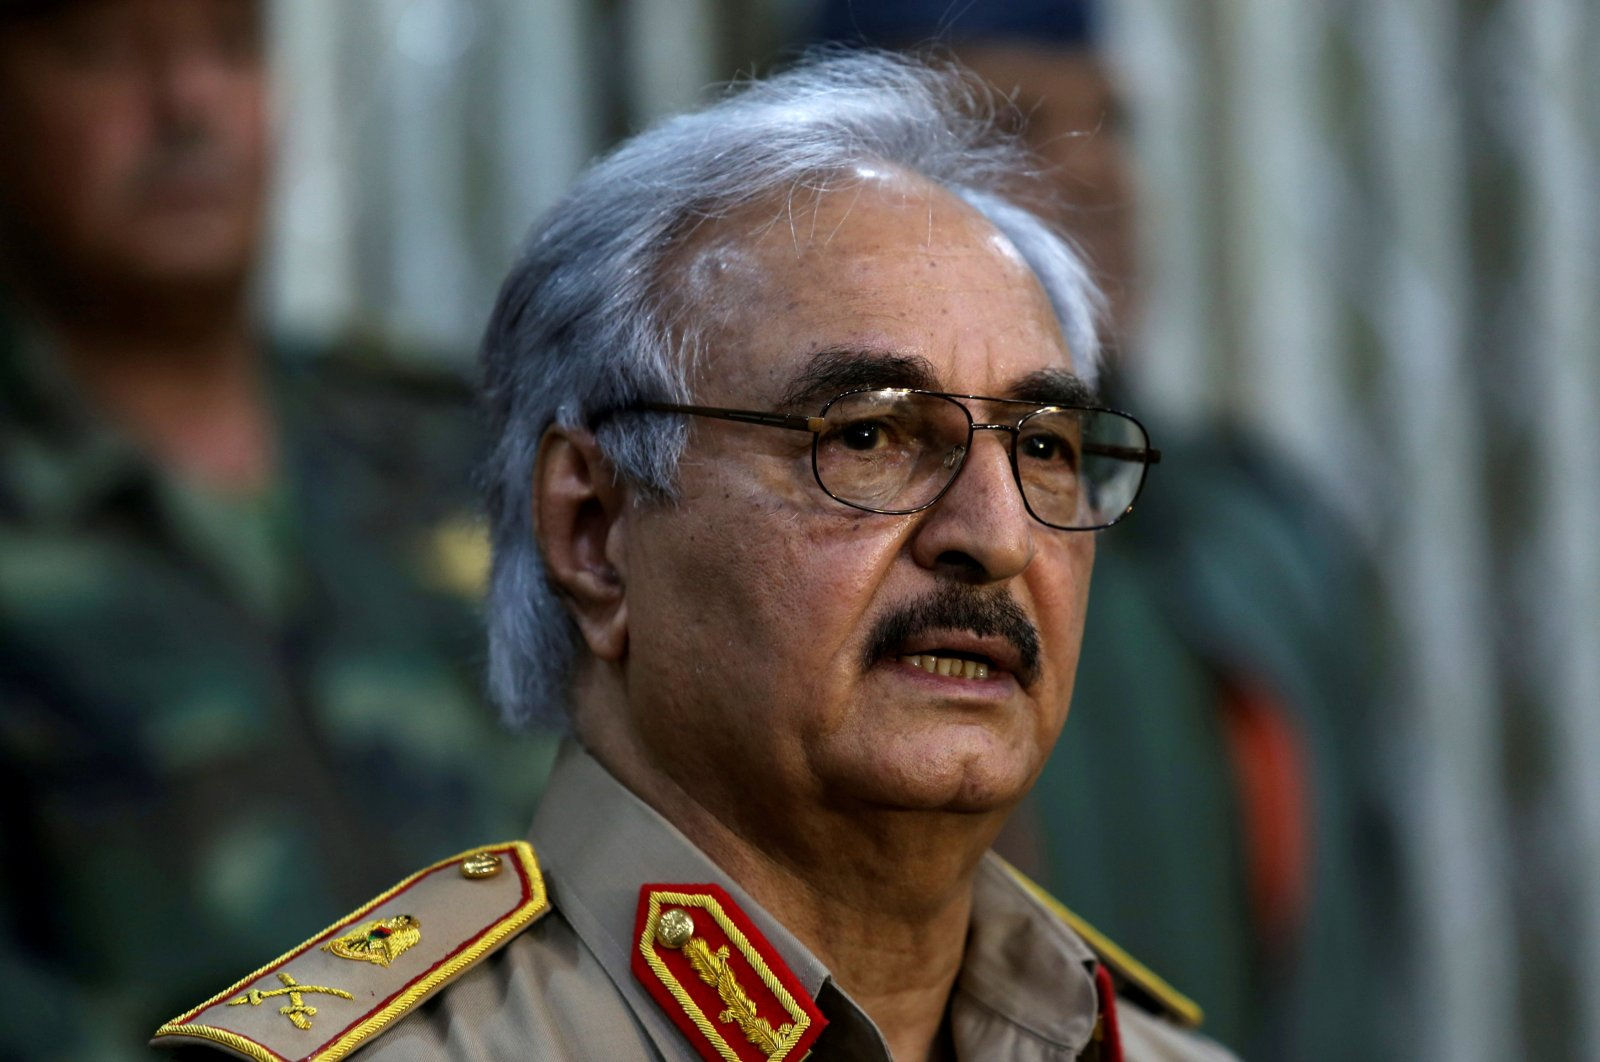 Libyan warlord Khalifa Haftar speaks during a news conference at a sports club in Abyar, a small town to the east of Benghazi, Libya, May 21, 2014. (Reuters File Photo)